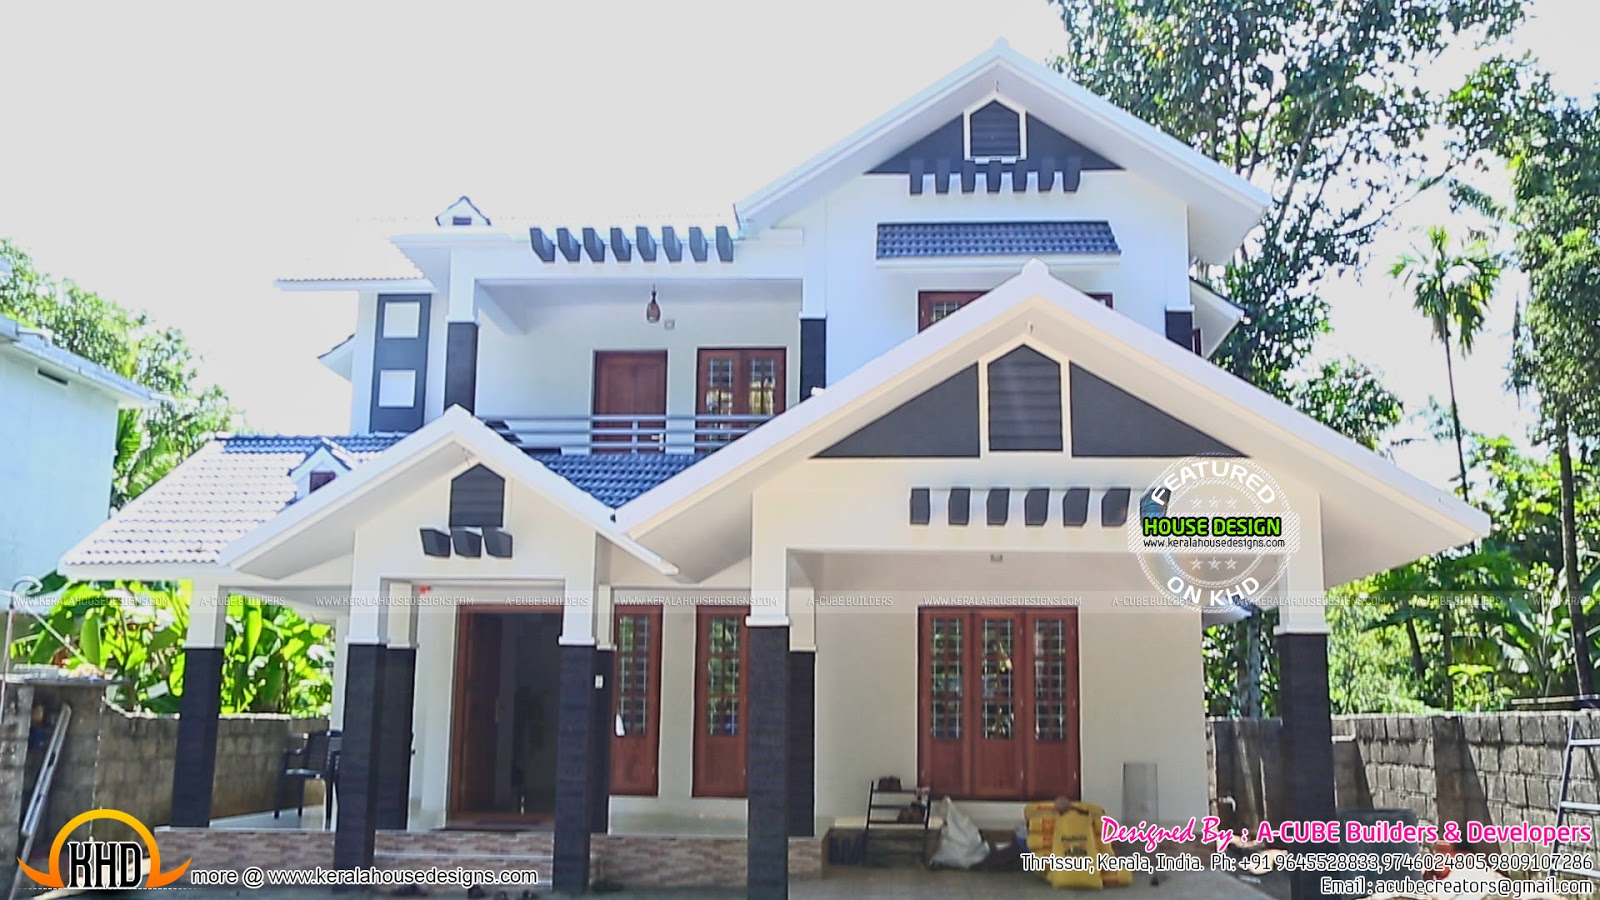 New house plans for 2016 starts here kerala home design for Kerala house plans and designs